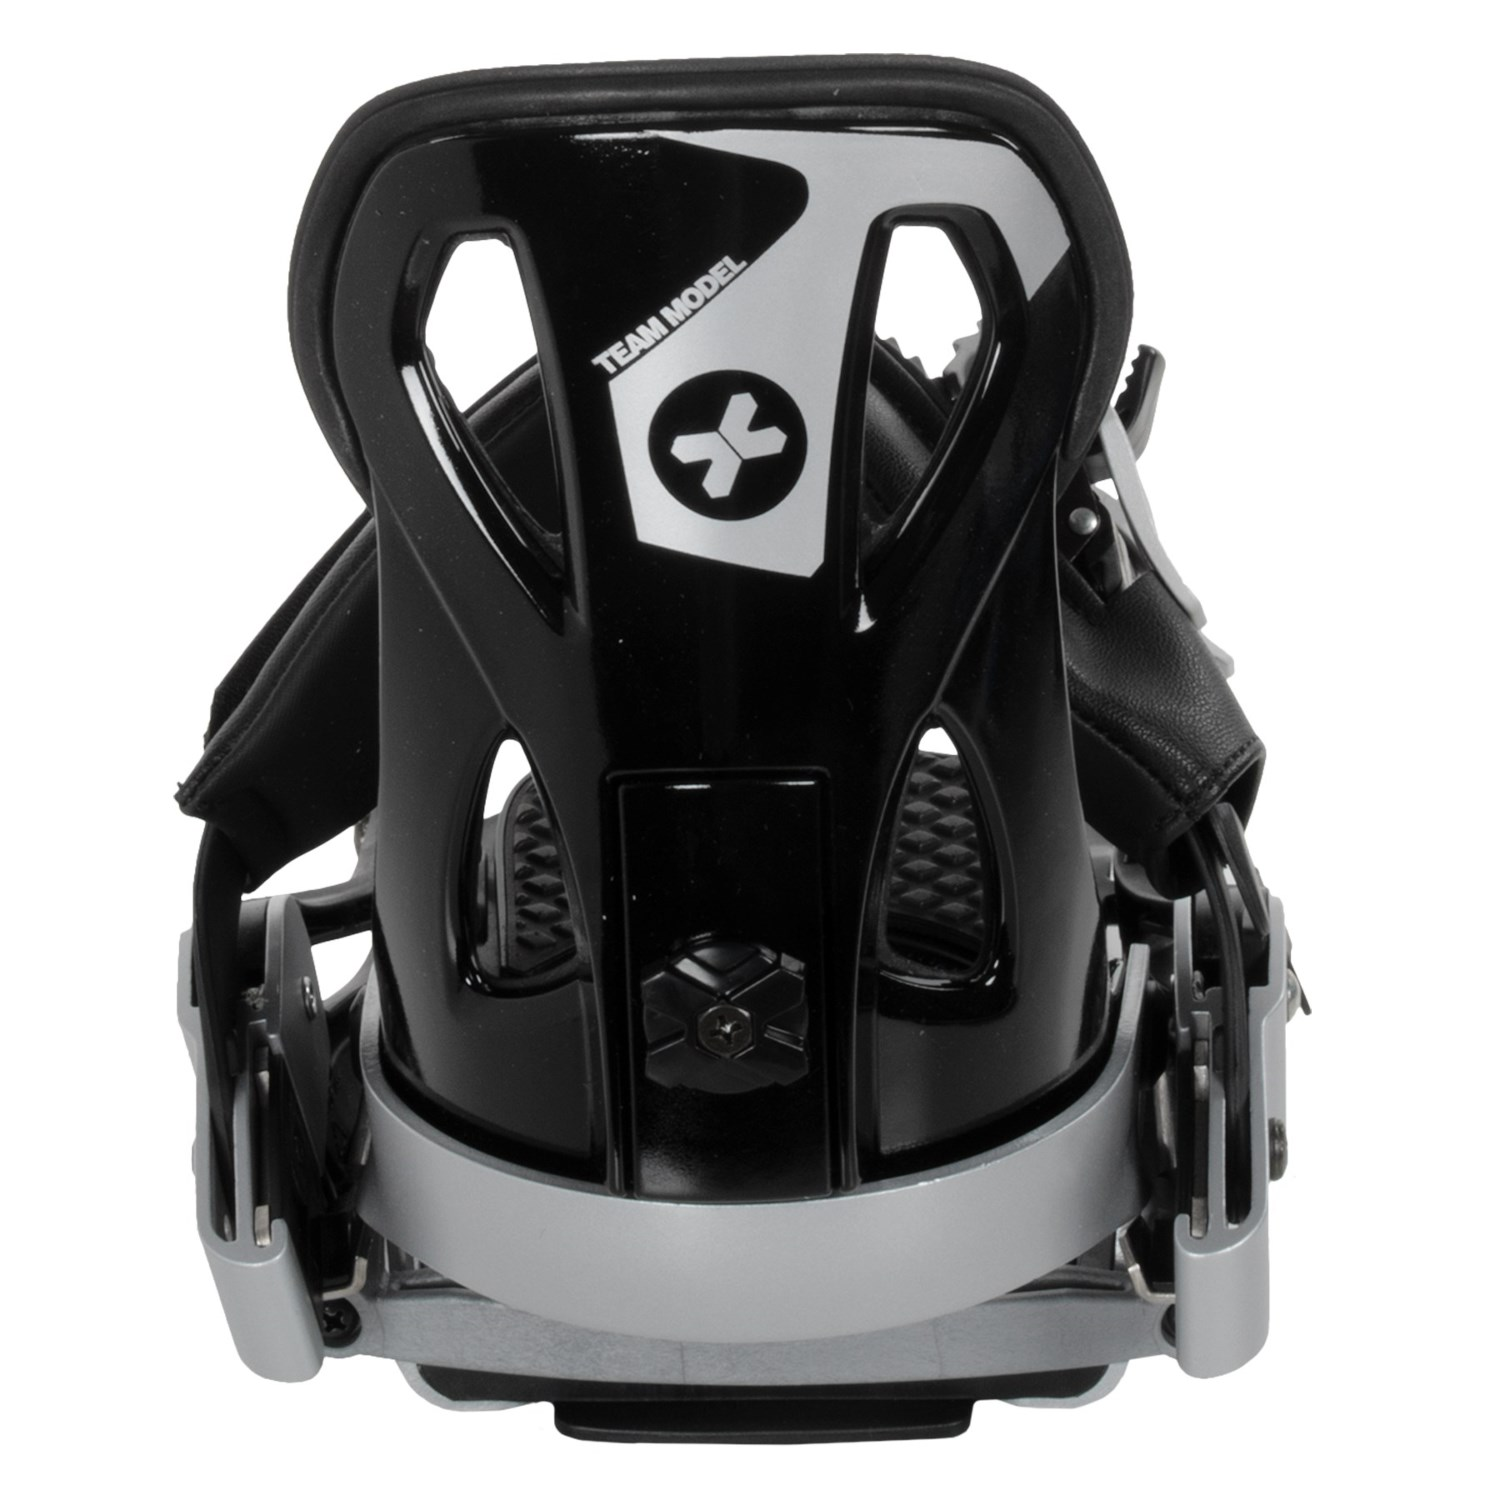 Launch Snowboards TM Beyond Series Snowboard Bindings